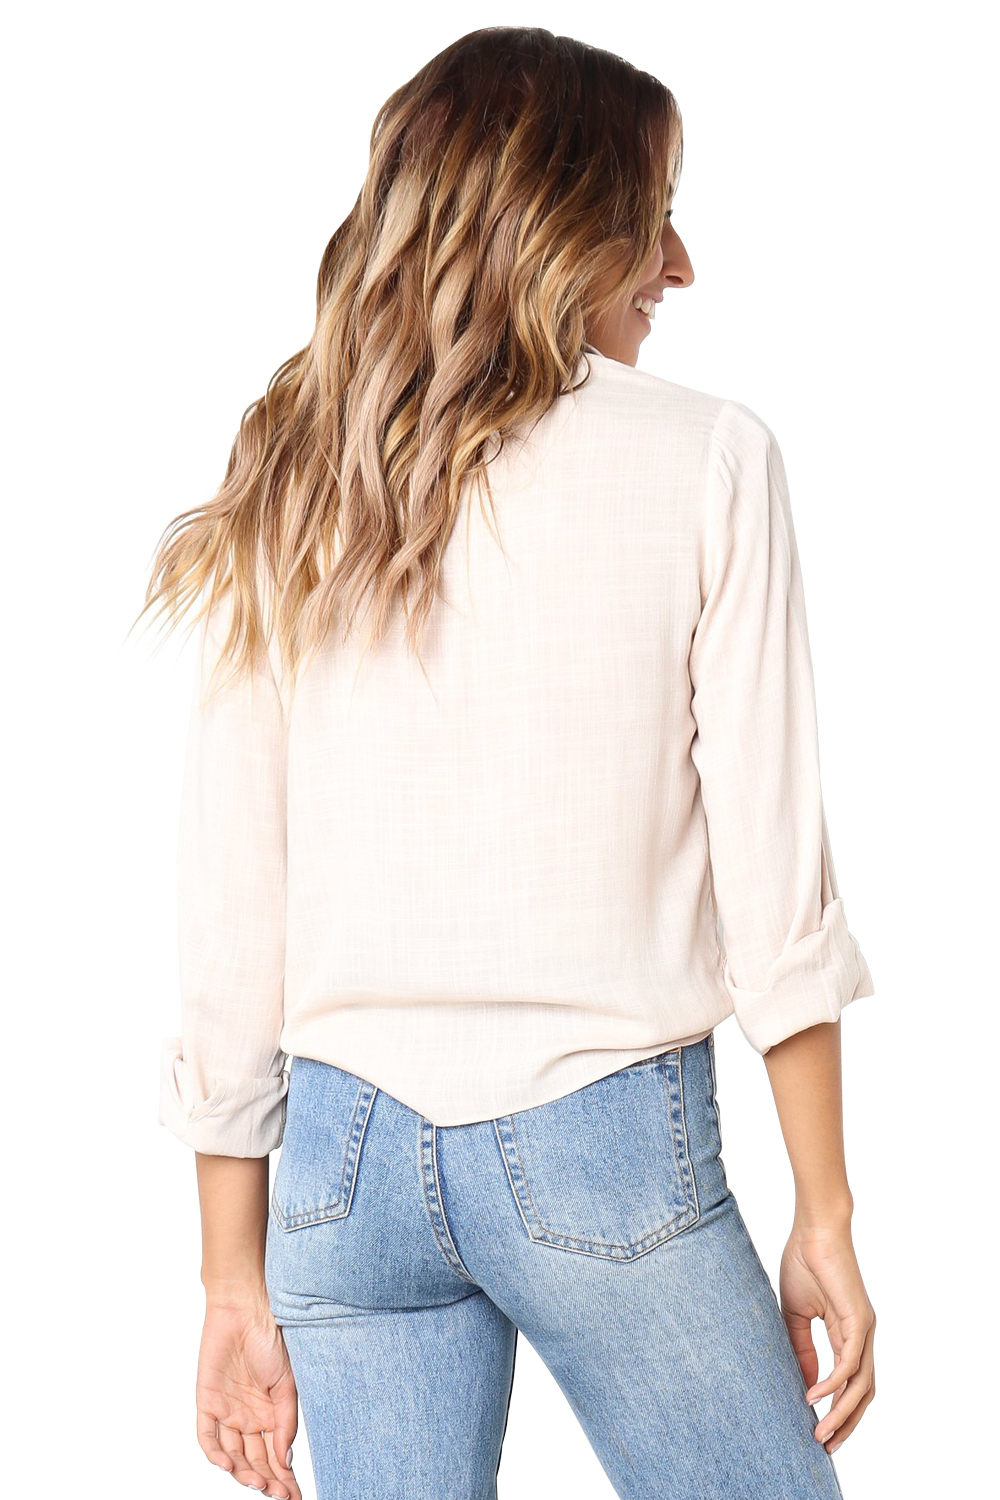 Apricot Crushed Linen Button-Down Casual Shirt  image 2